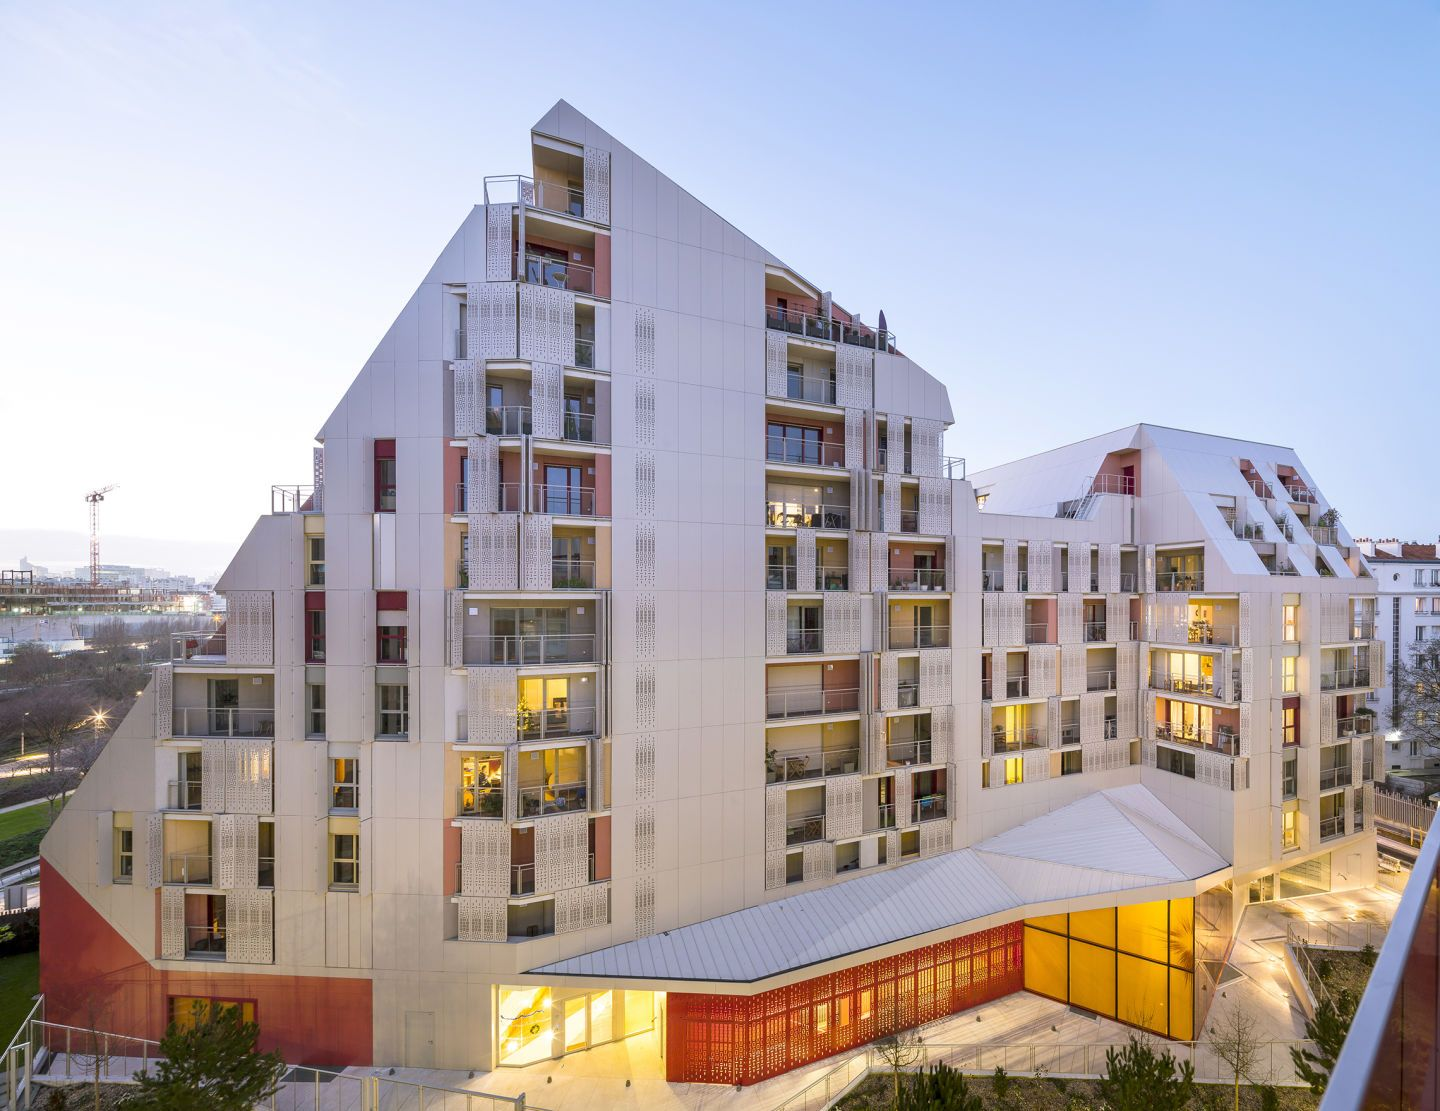 Formerly a railway enclave, the Clichy-Batignolles ecodistrict is reconquering this forgotten piece of Parisian ground. This major municipal project was envisioned as a response to the elevated need for housing while paving the way for a durable, mixed...